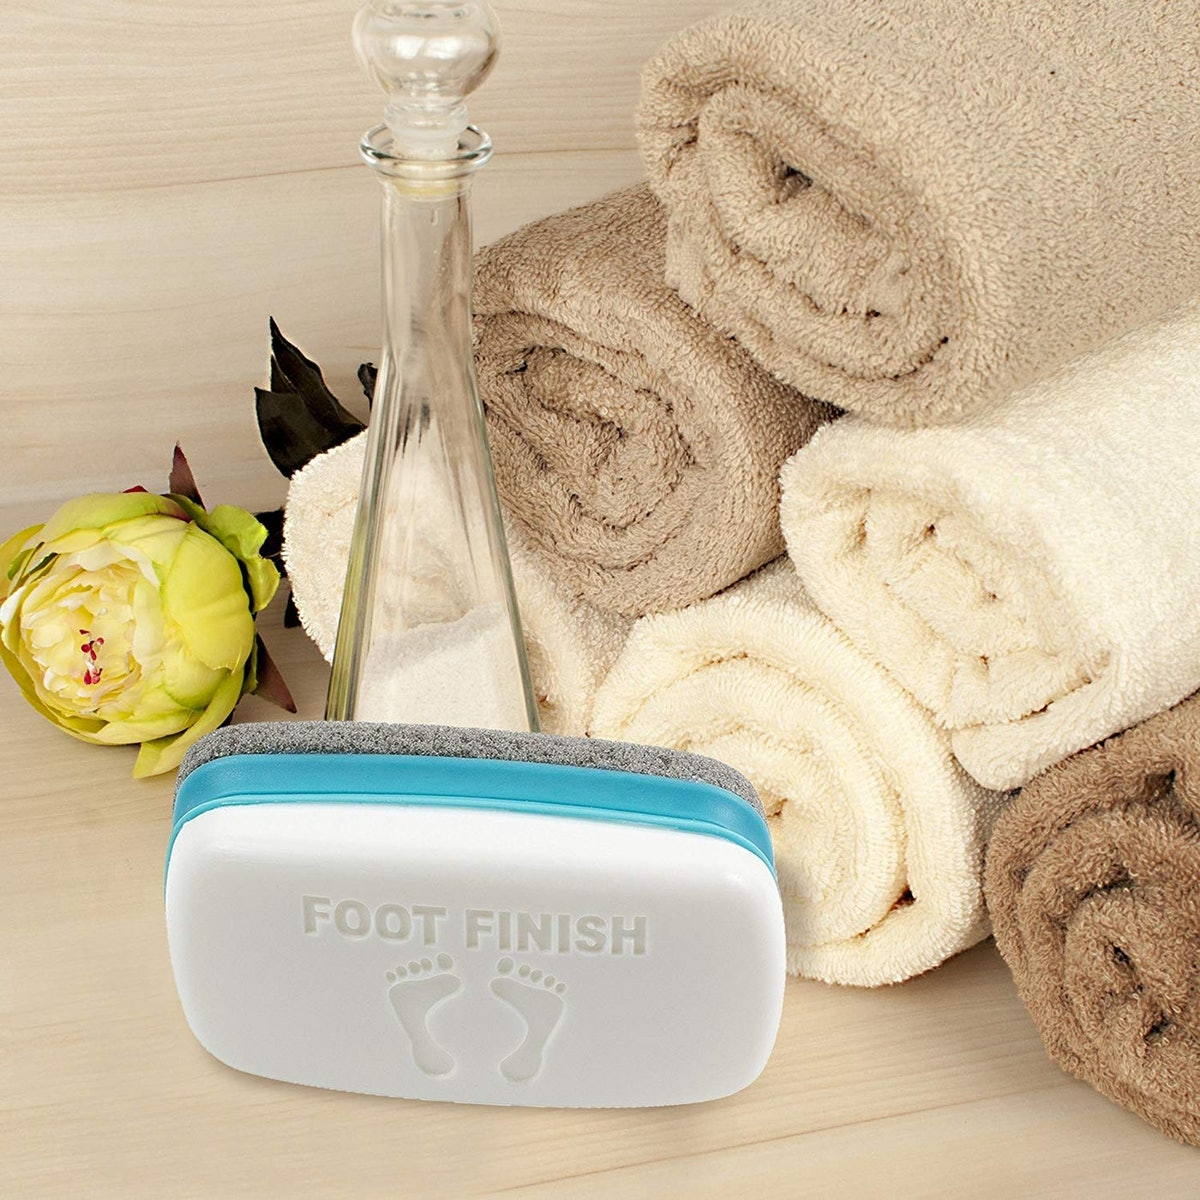 Foot Finish Athlete's Foot Scrubber